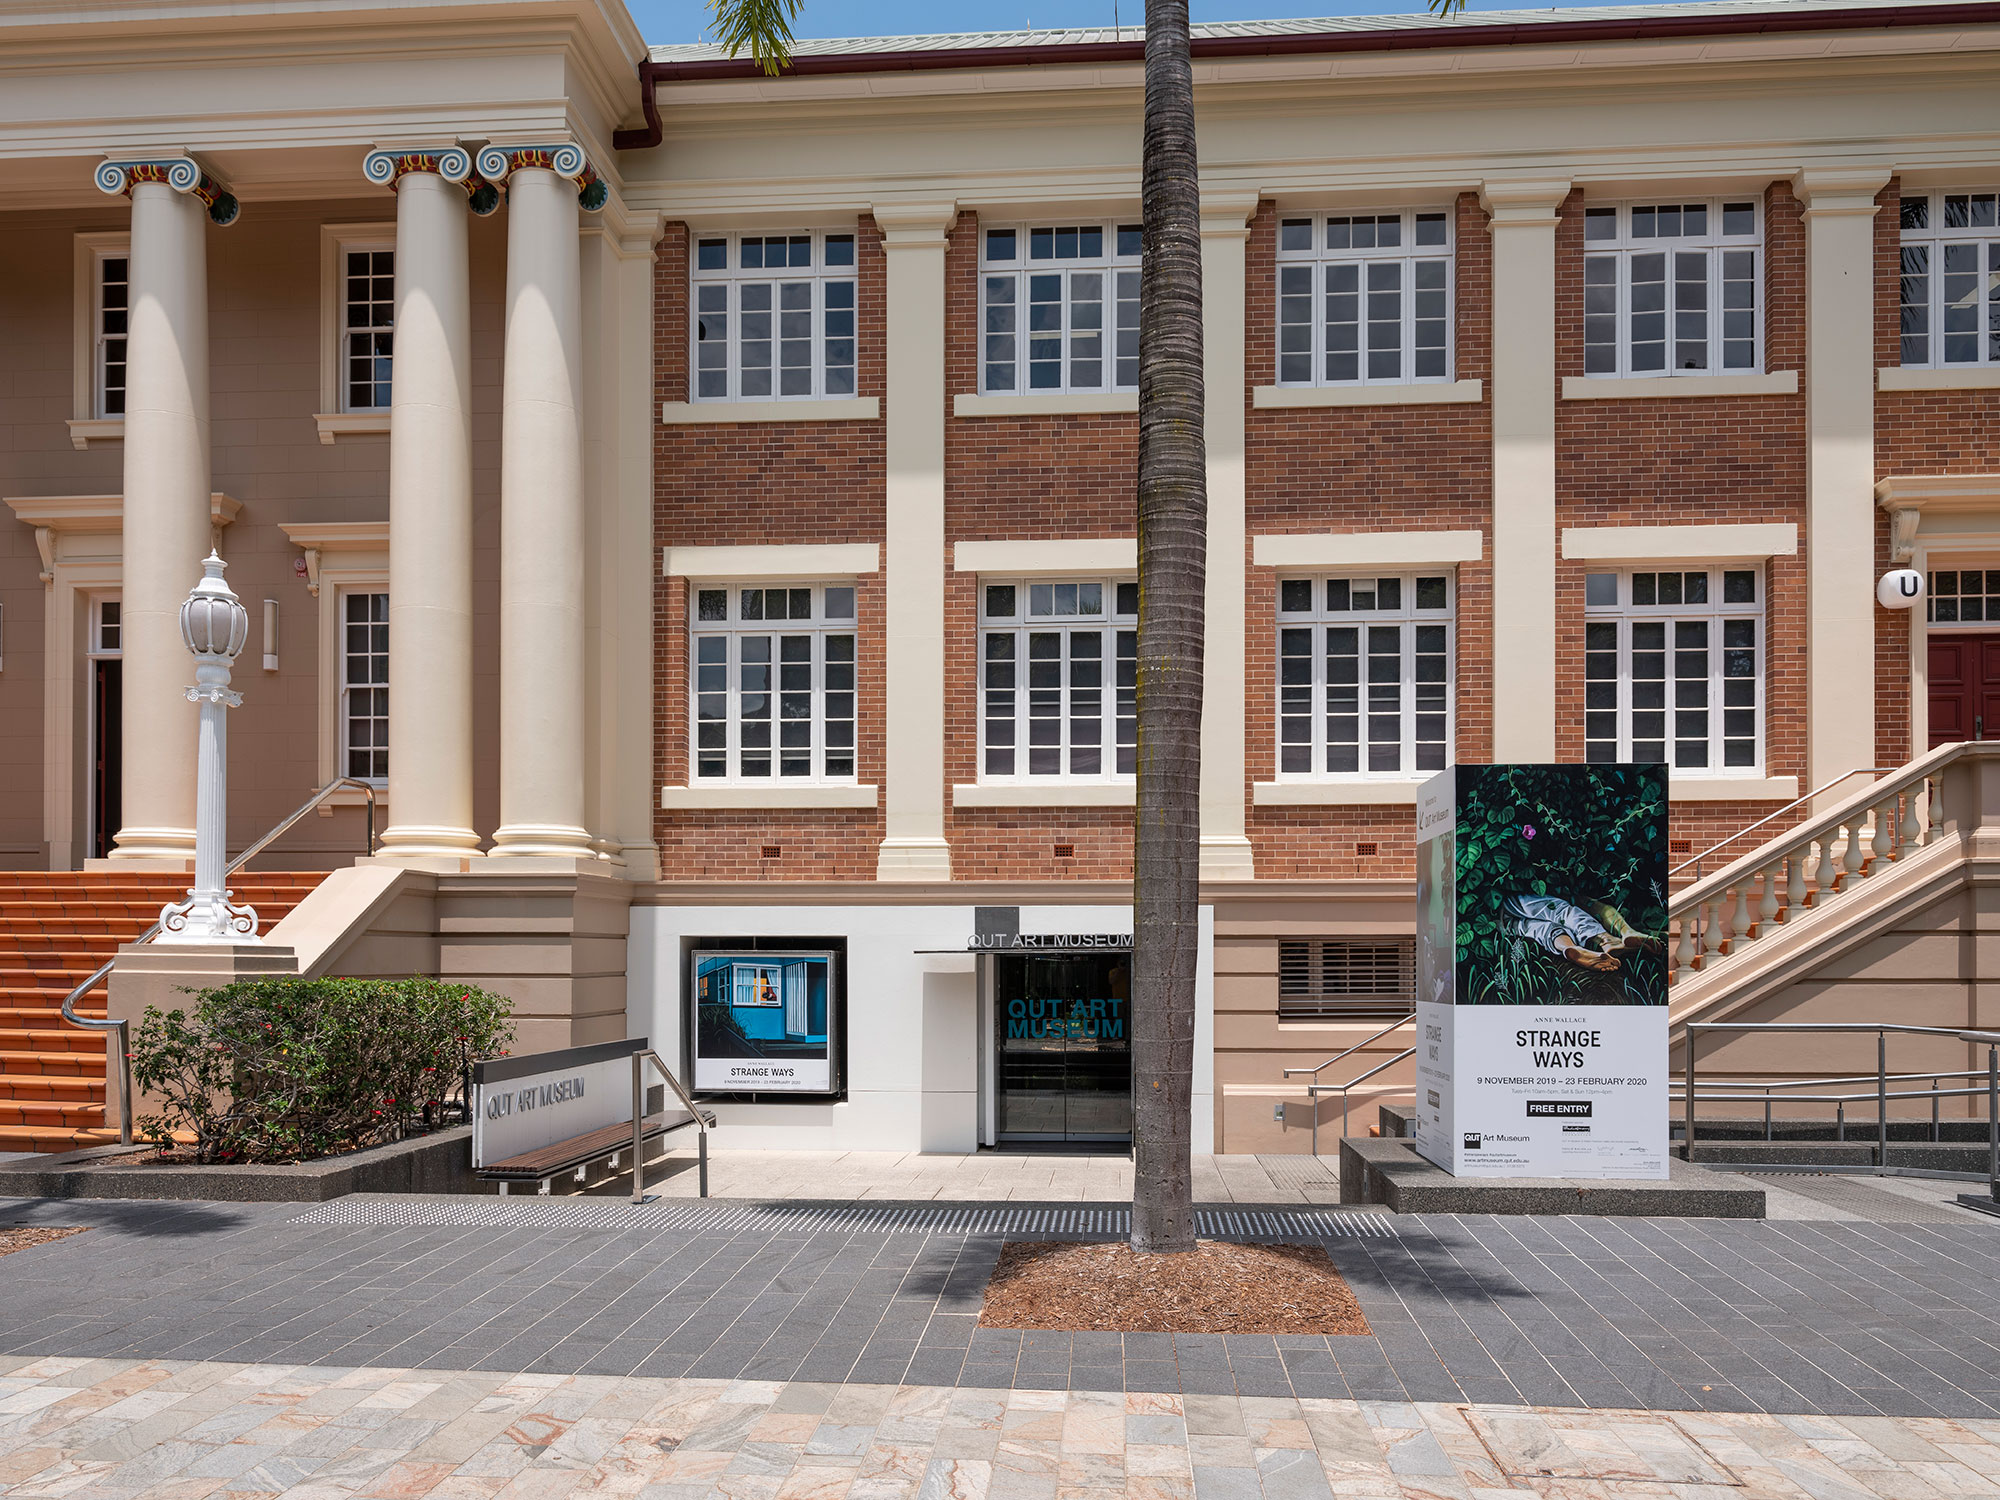 Our sister gallery: QUT Art Museum